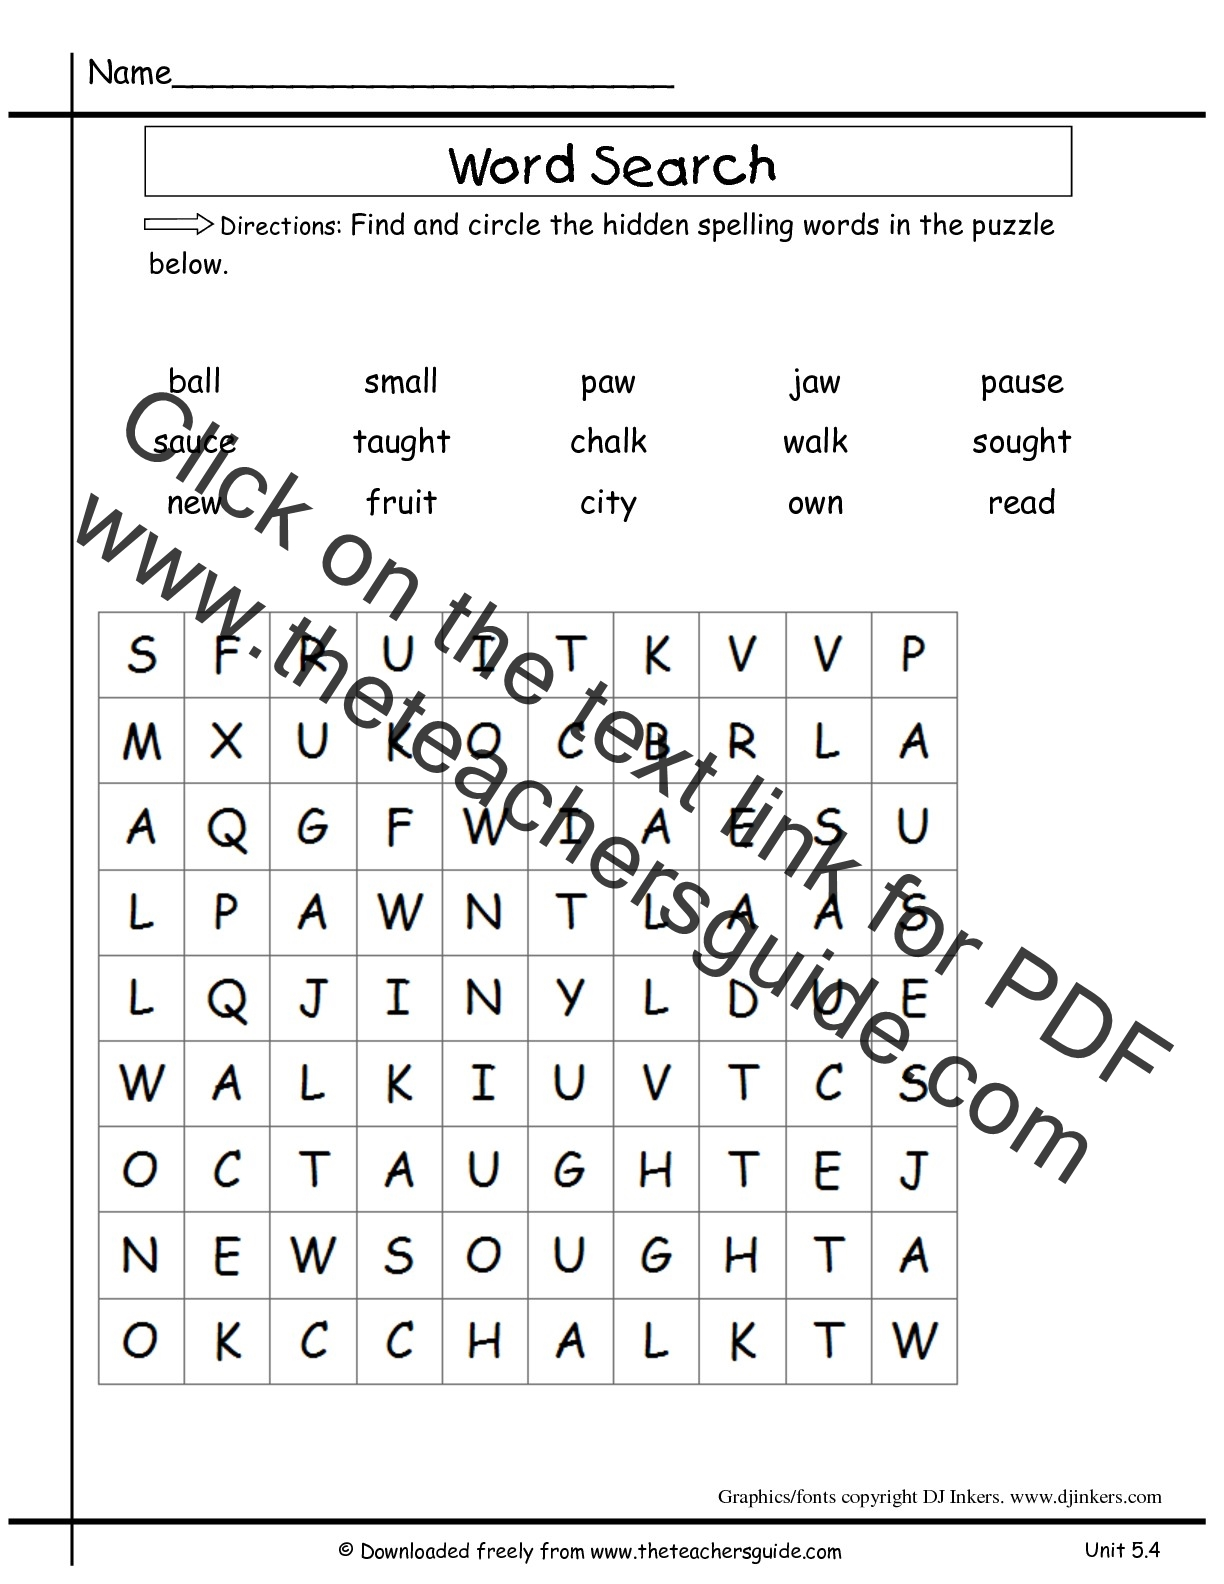 graphic regarding 2nd Grade Word Search Printable known as Miracles Minute Quality Device 5 7 days 4 Printouts